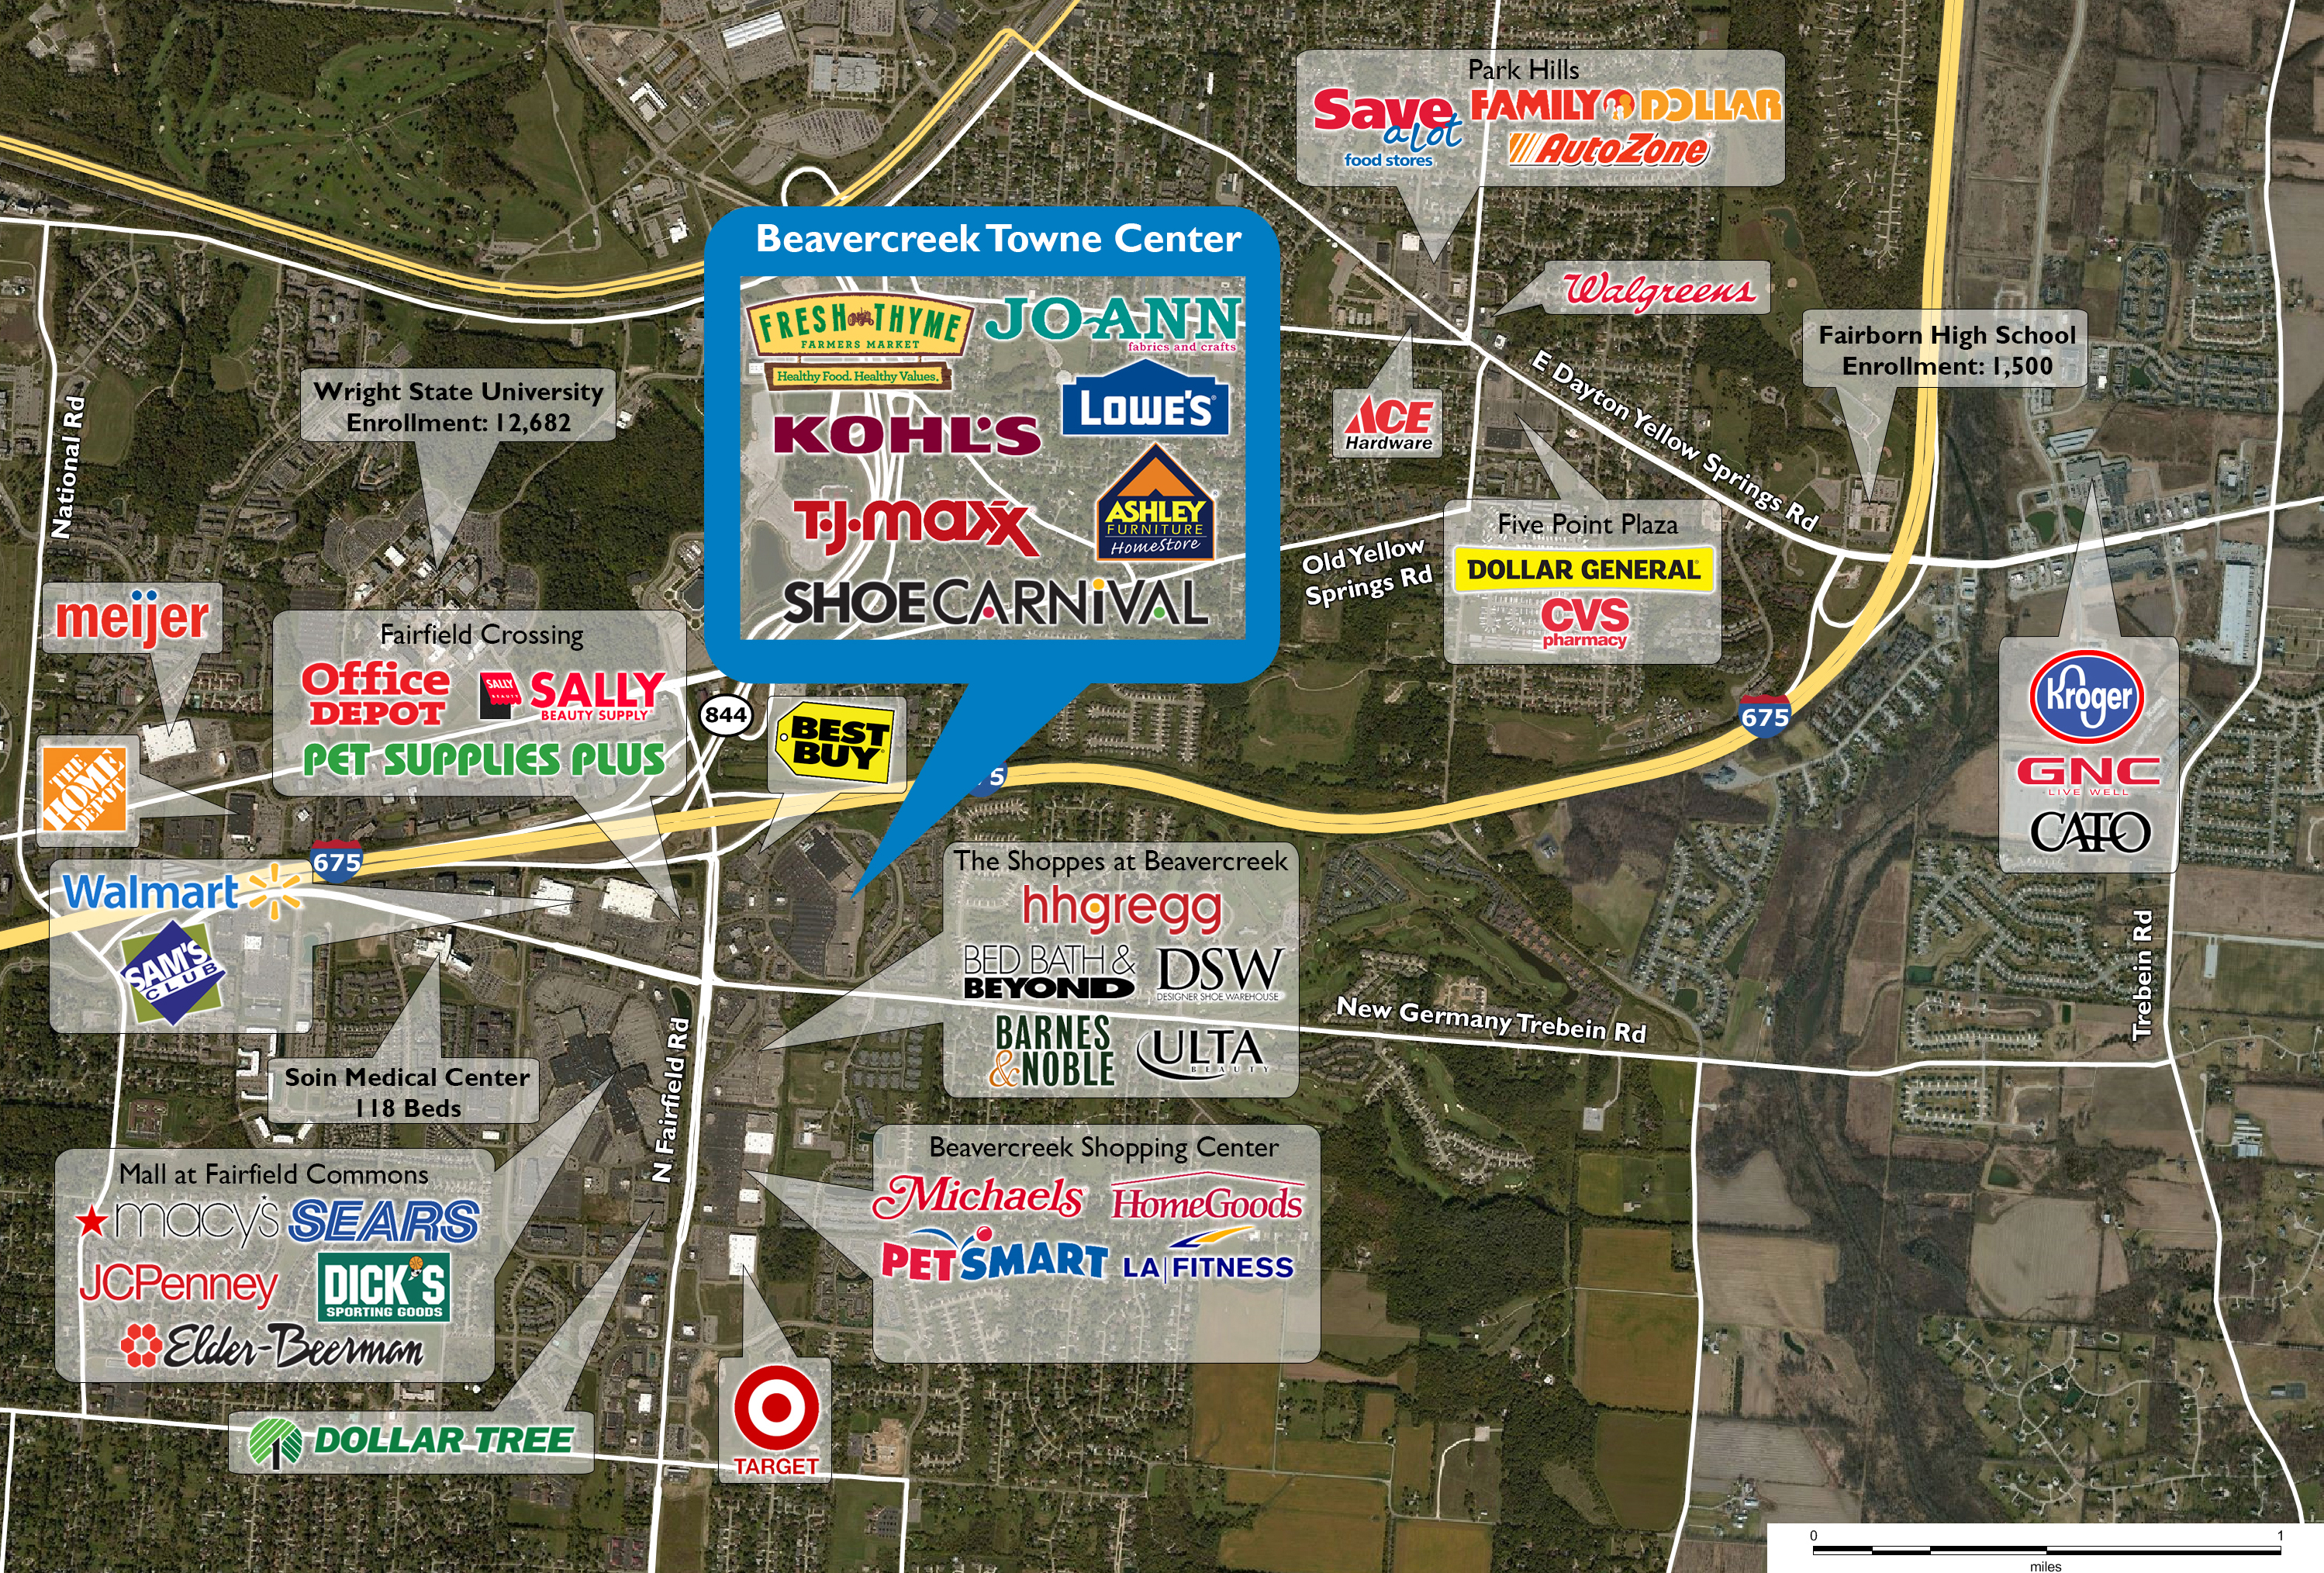 Beavercreek Towne Center 10